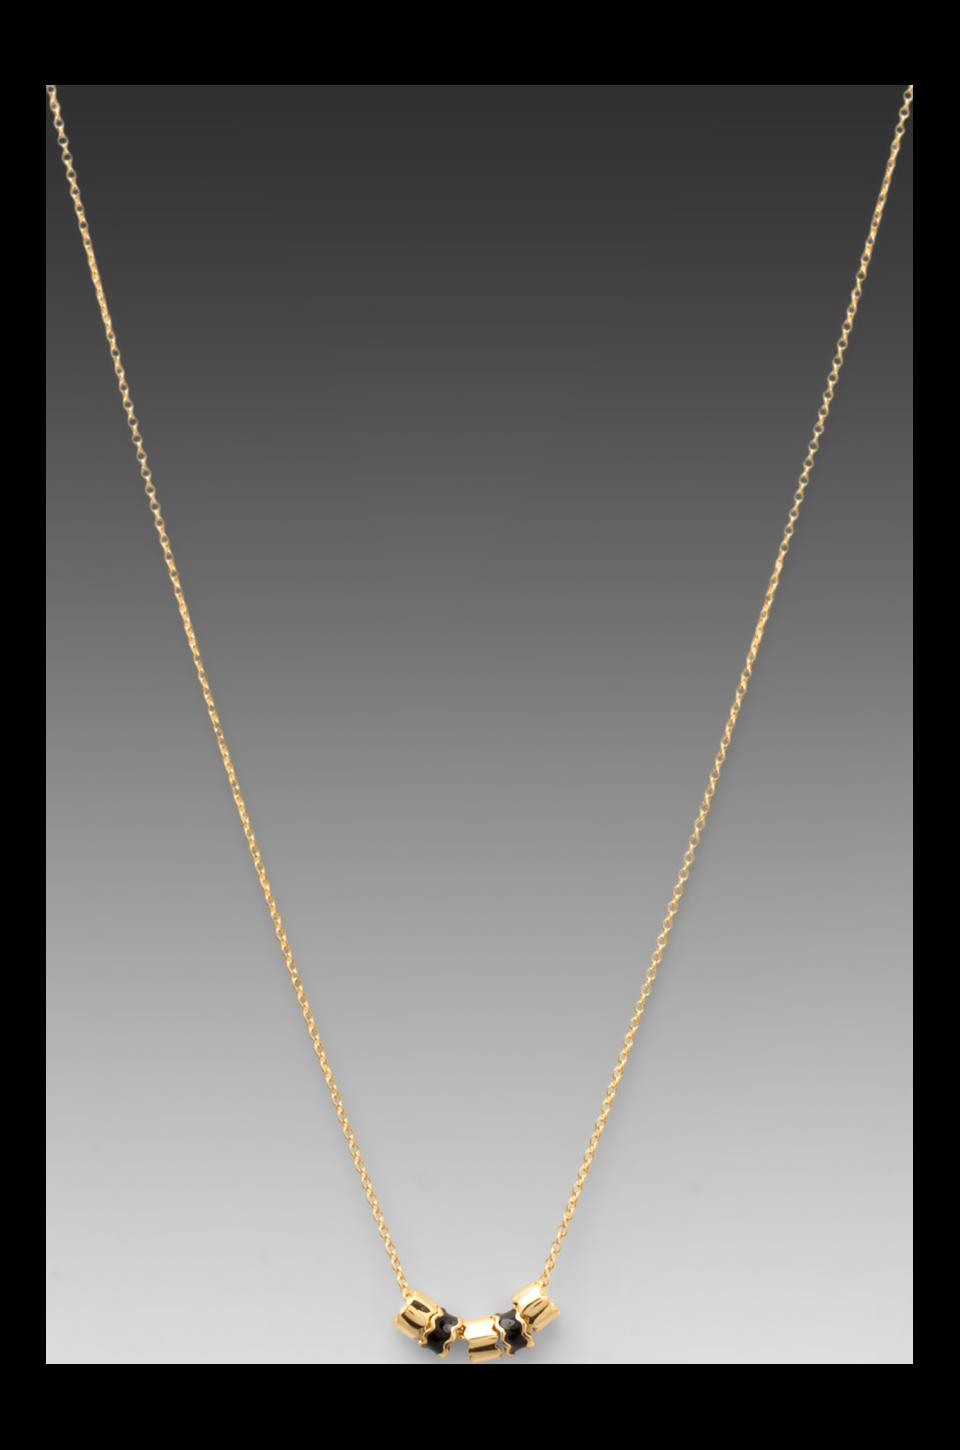 gorjana Zig Zag Enamel Small Necklace in Black/Gold